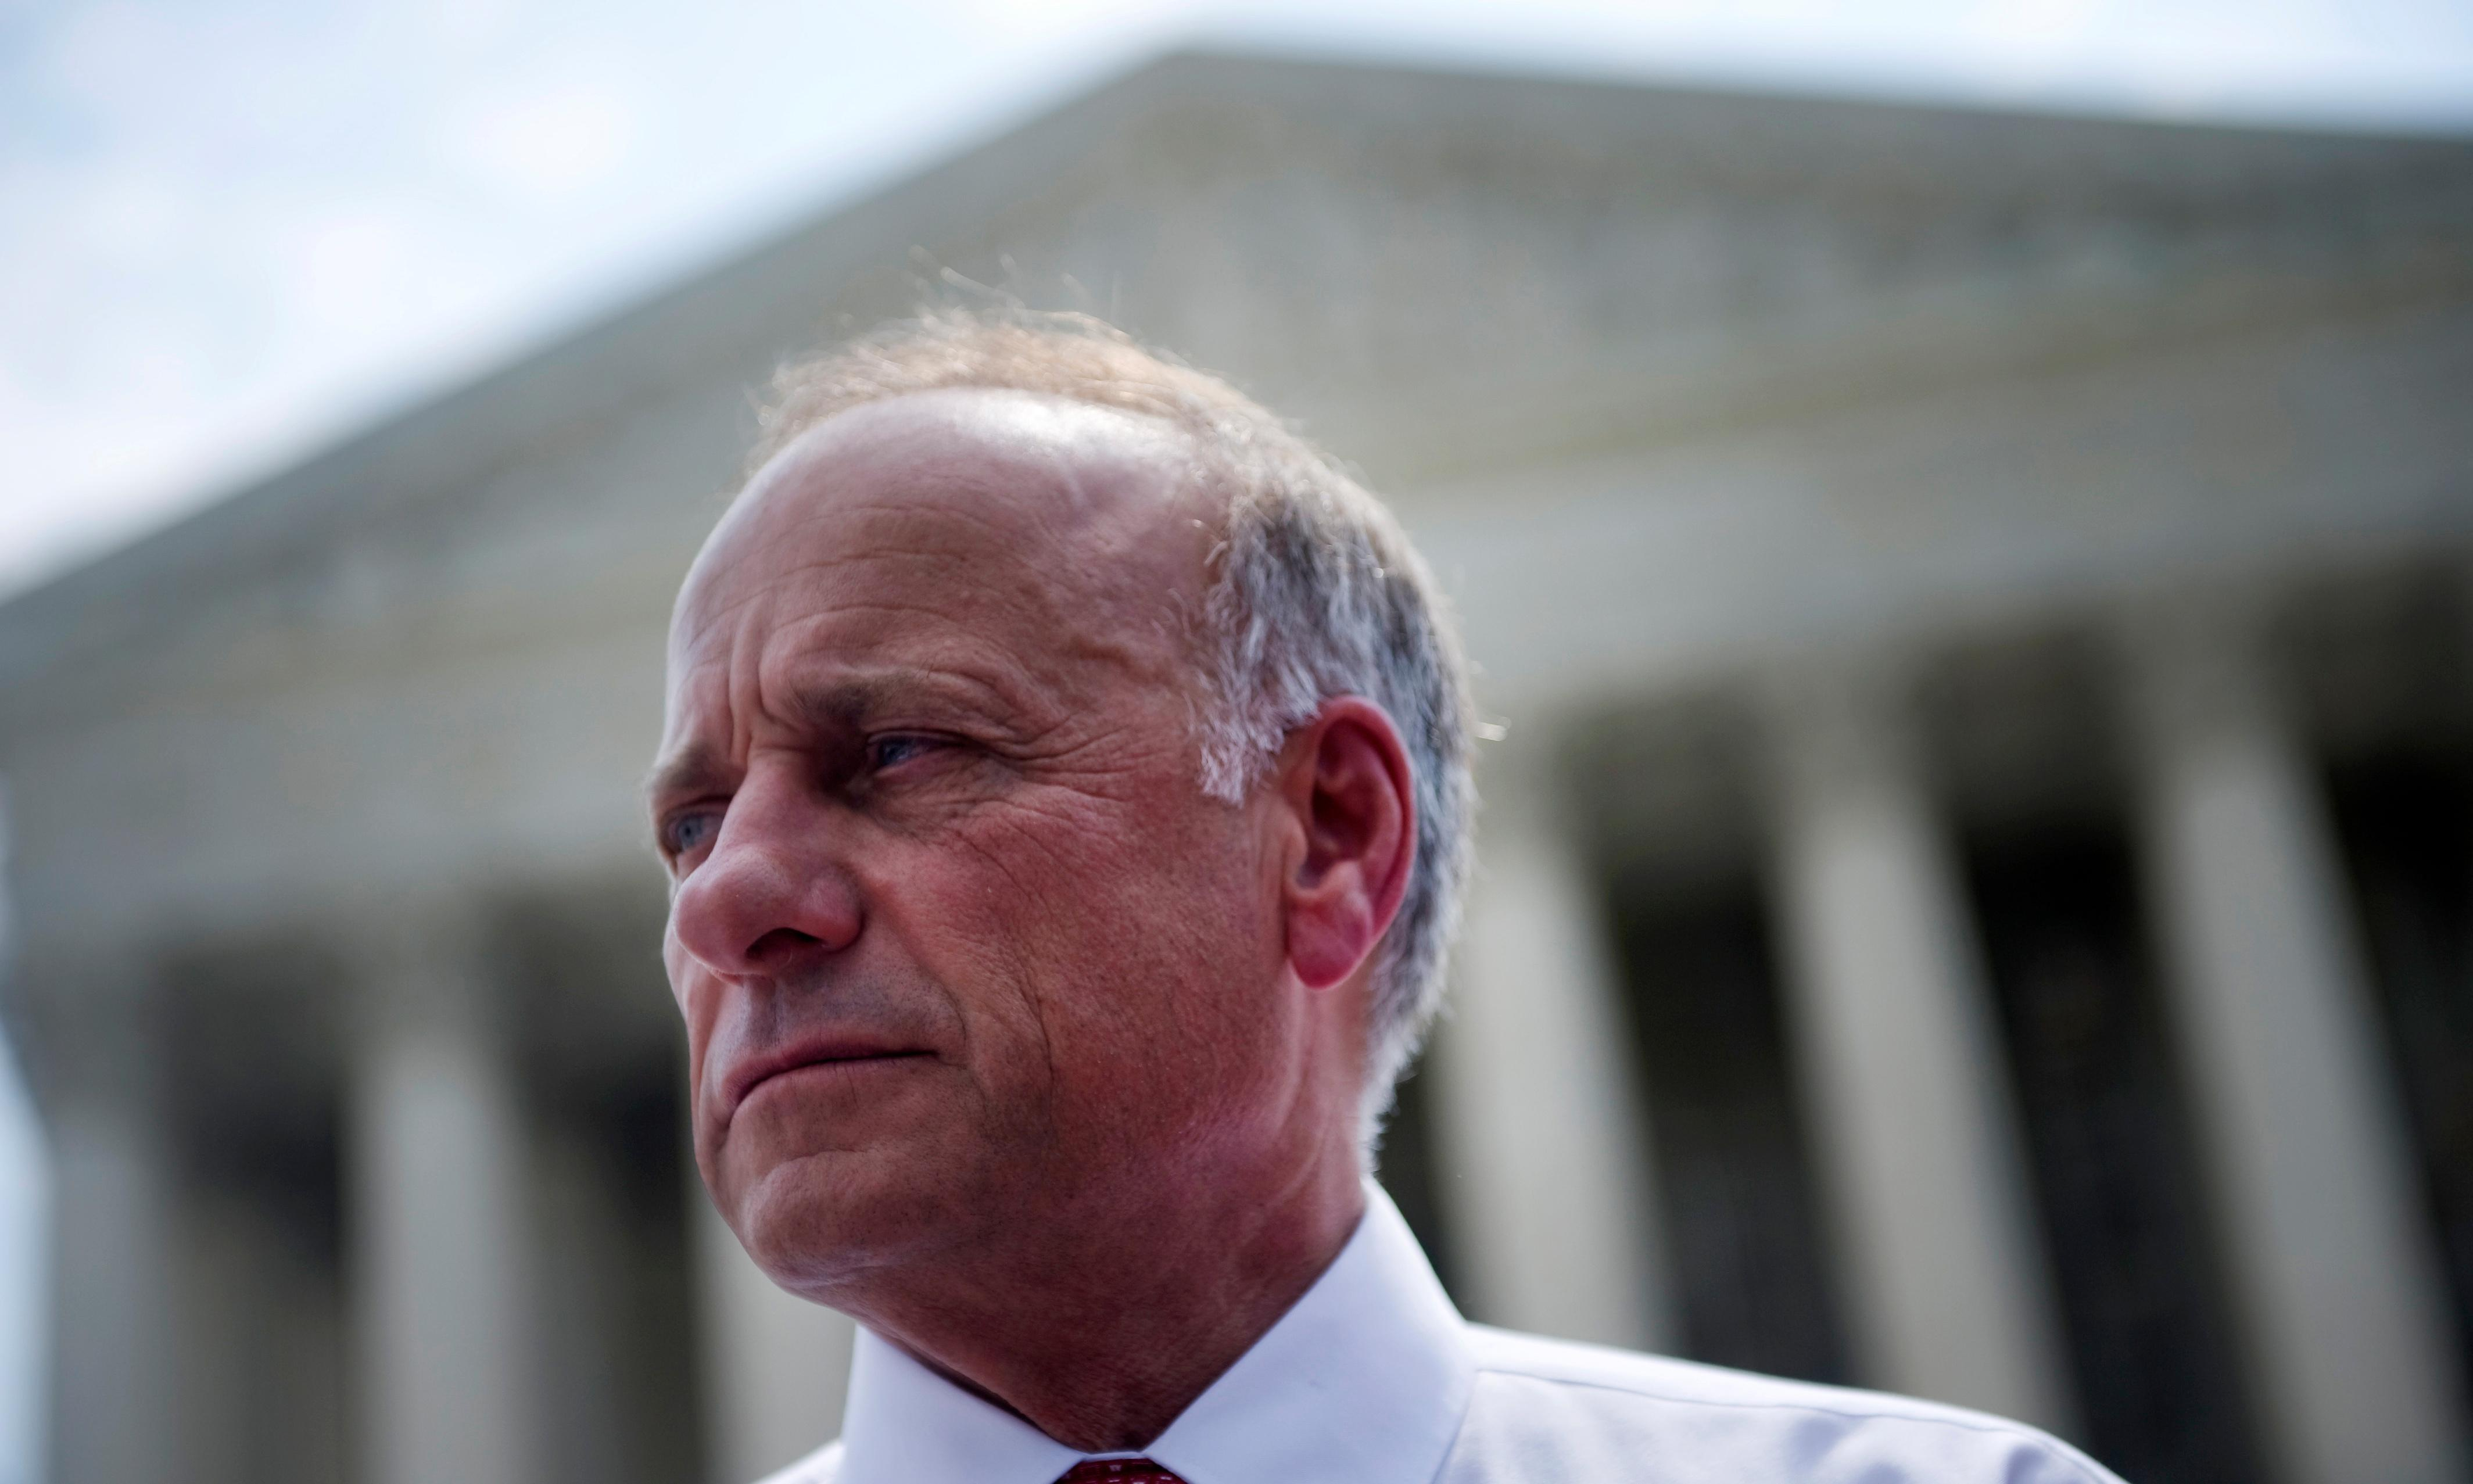 Republican Steve King condemned for 'disgusting' remarks on Katrina victims